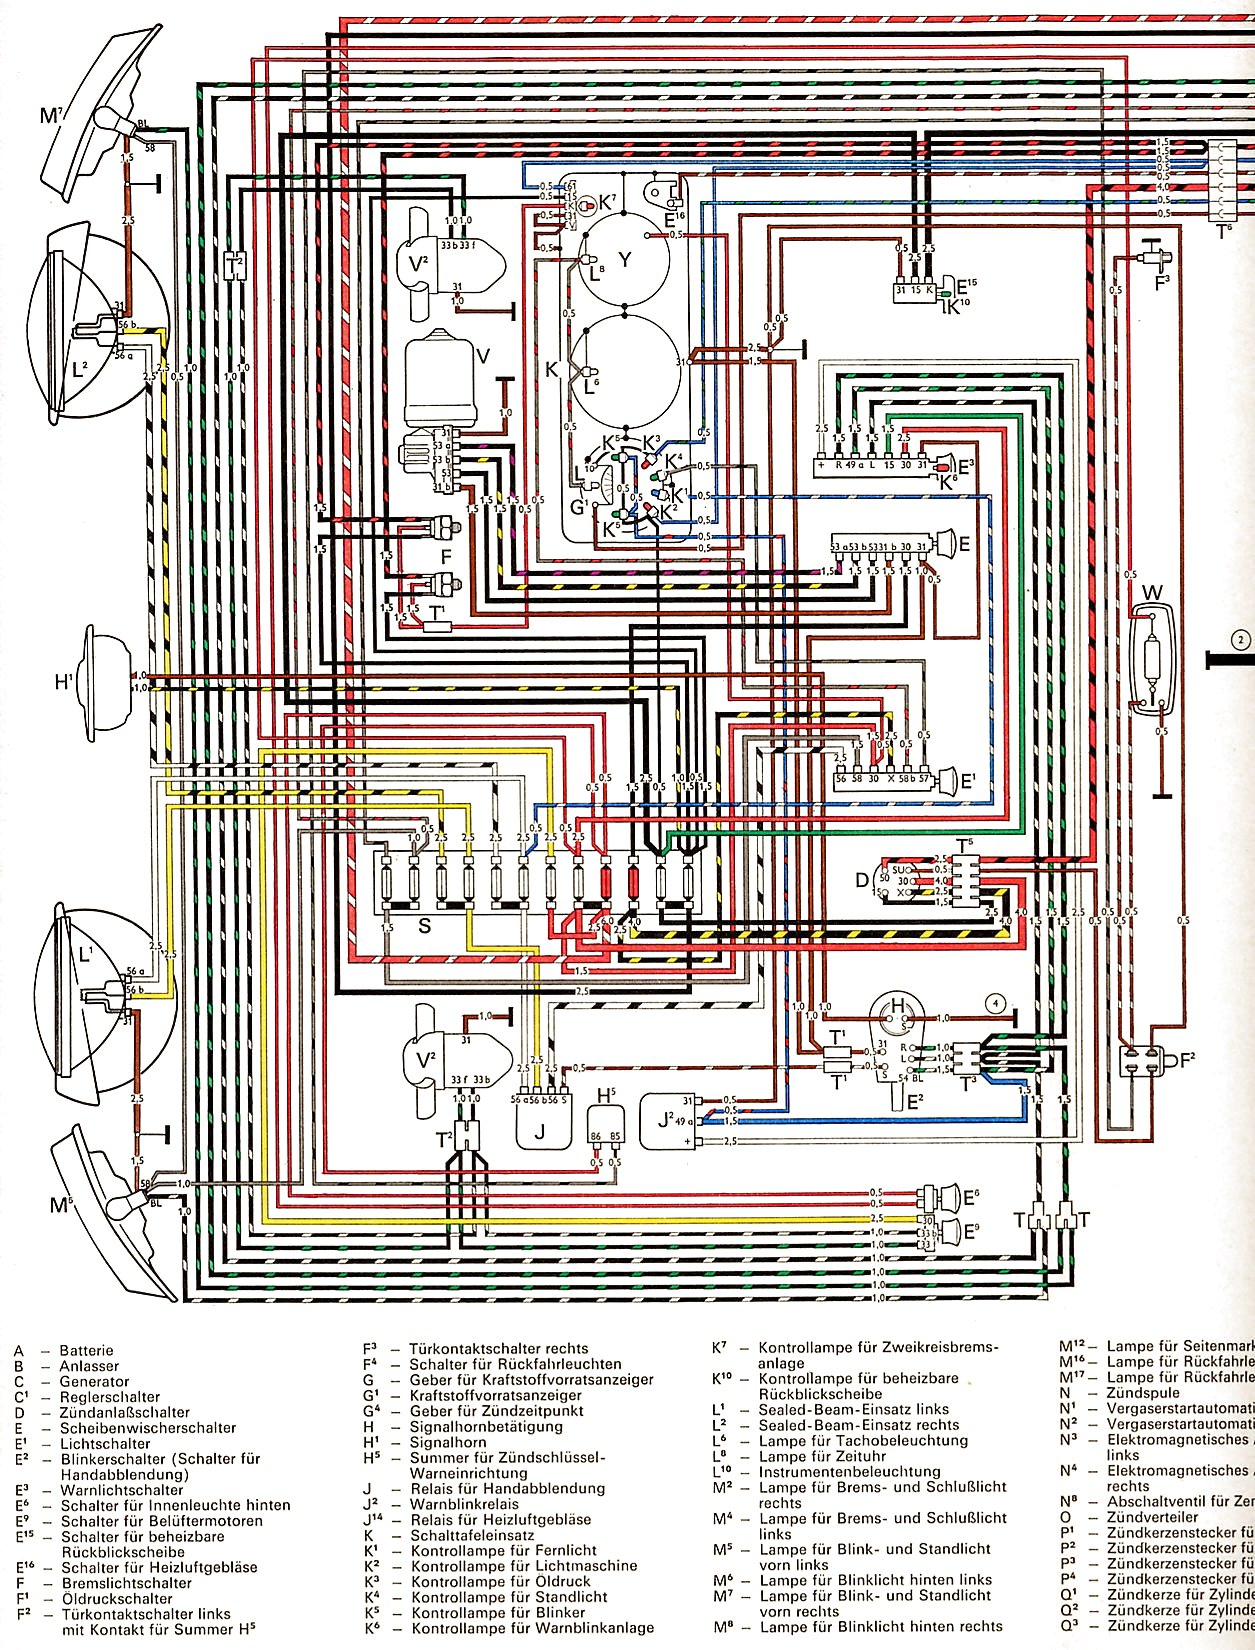 Transporter_USA_from_August_1971 1 vw t4 wiring diagram 73 vw beetle wiring diagram \u2022 free wiring vw transporter wiring diagram t5 at edmiracle.co